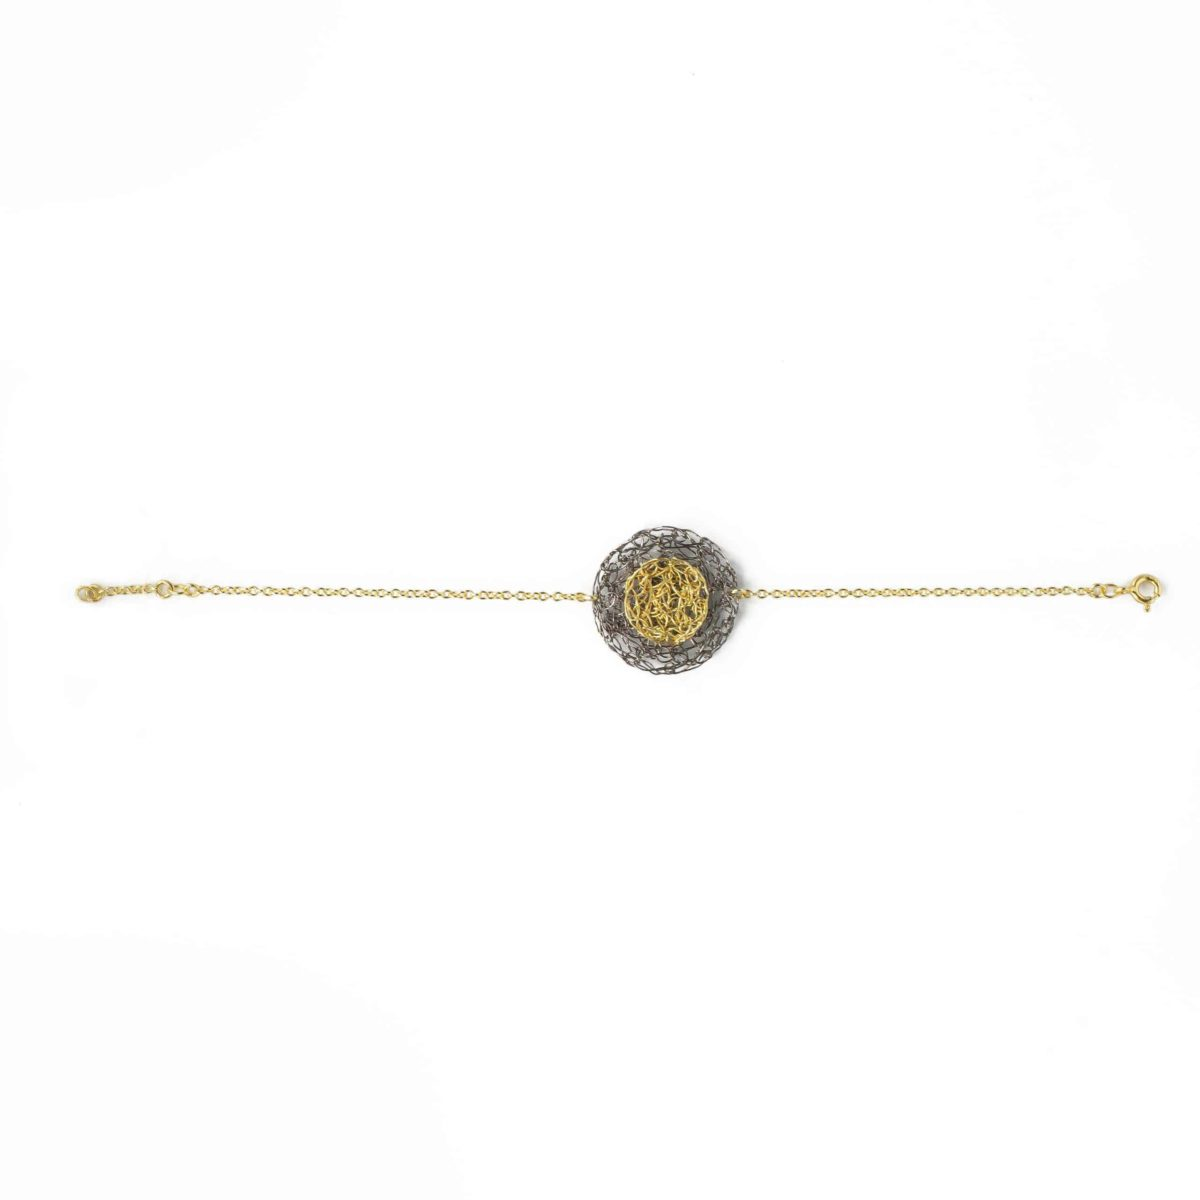 round charm bracelet in gold color